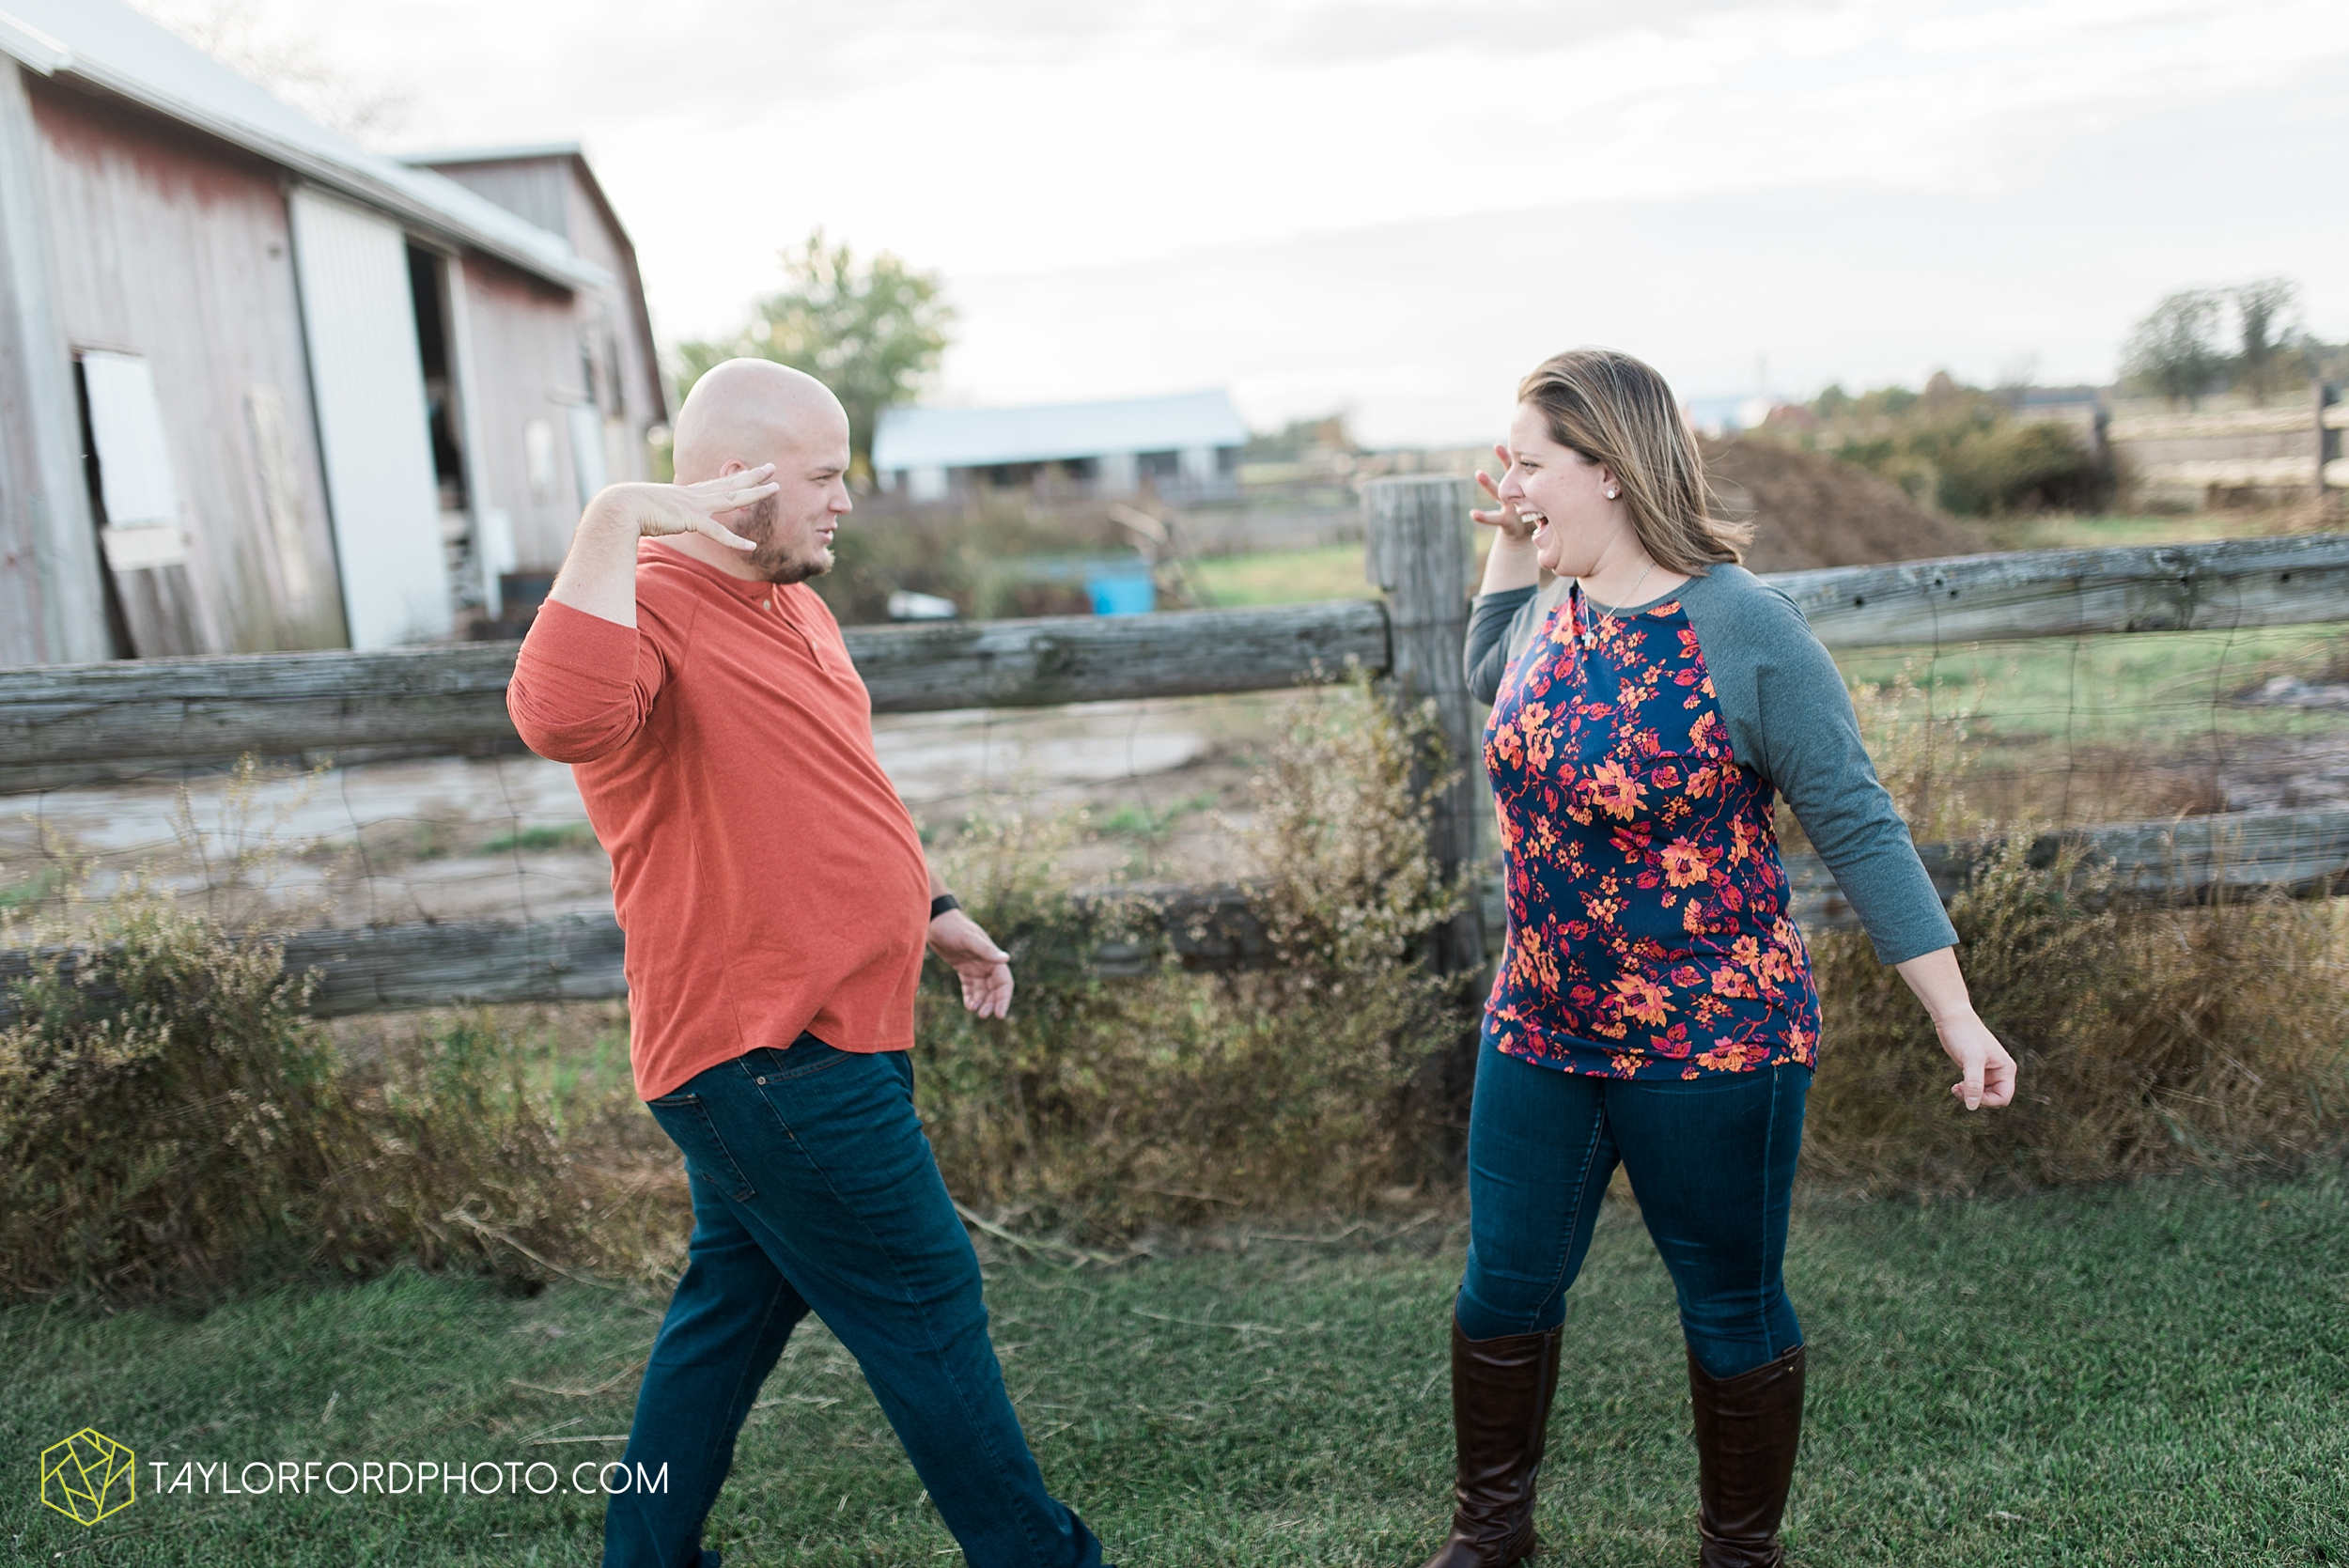 van-wert-ohio-engagement-wedding-photographer-Taylor-Ford-Photography-fall-farm-nature_4147.jpg